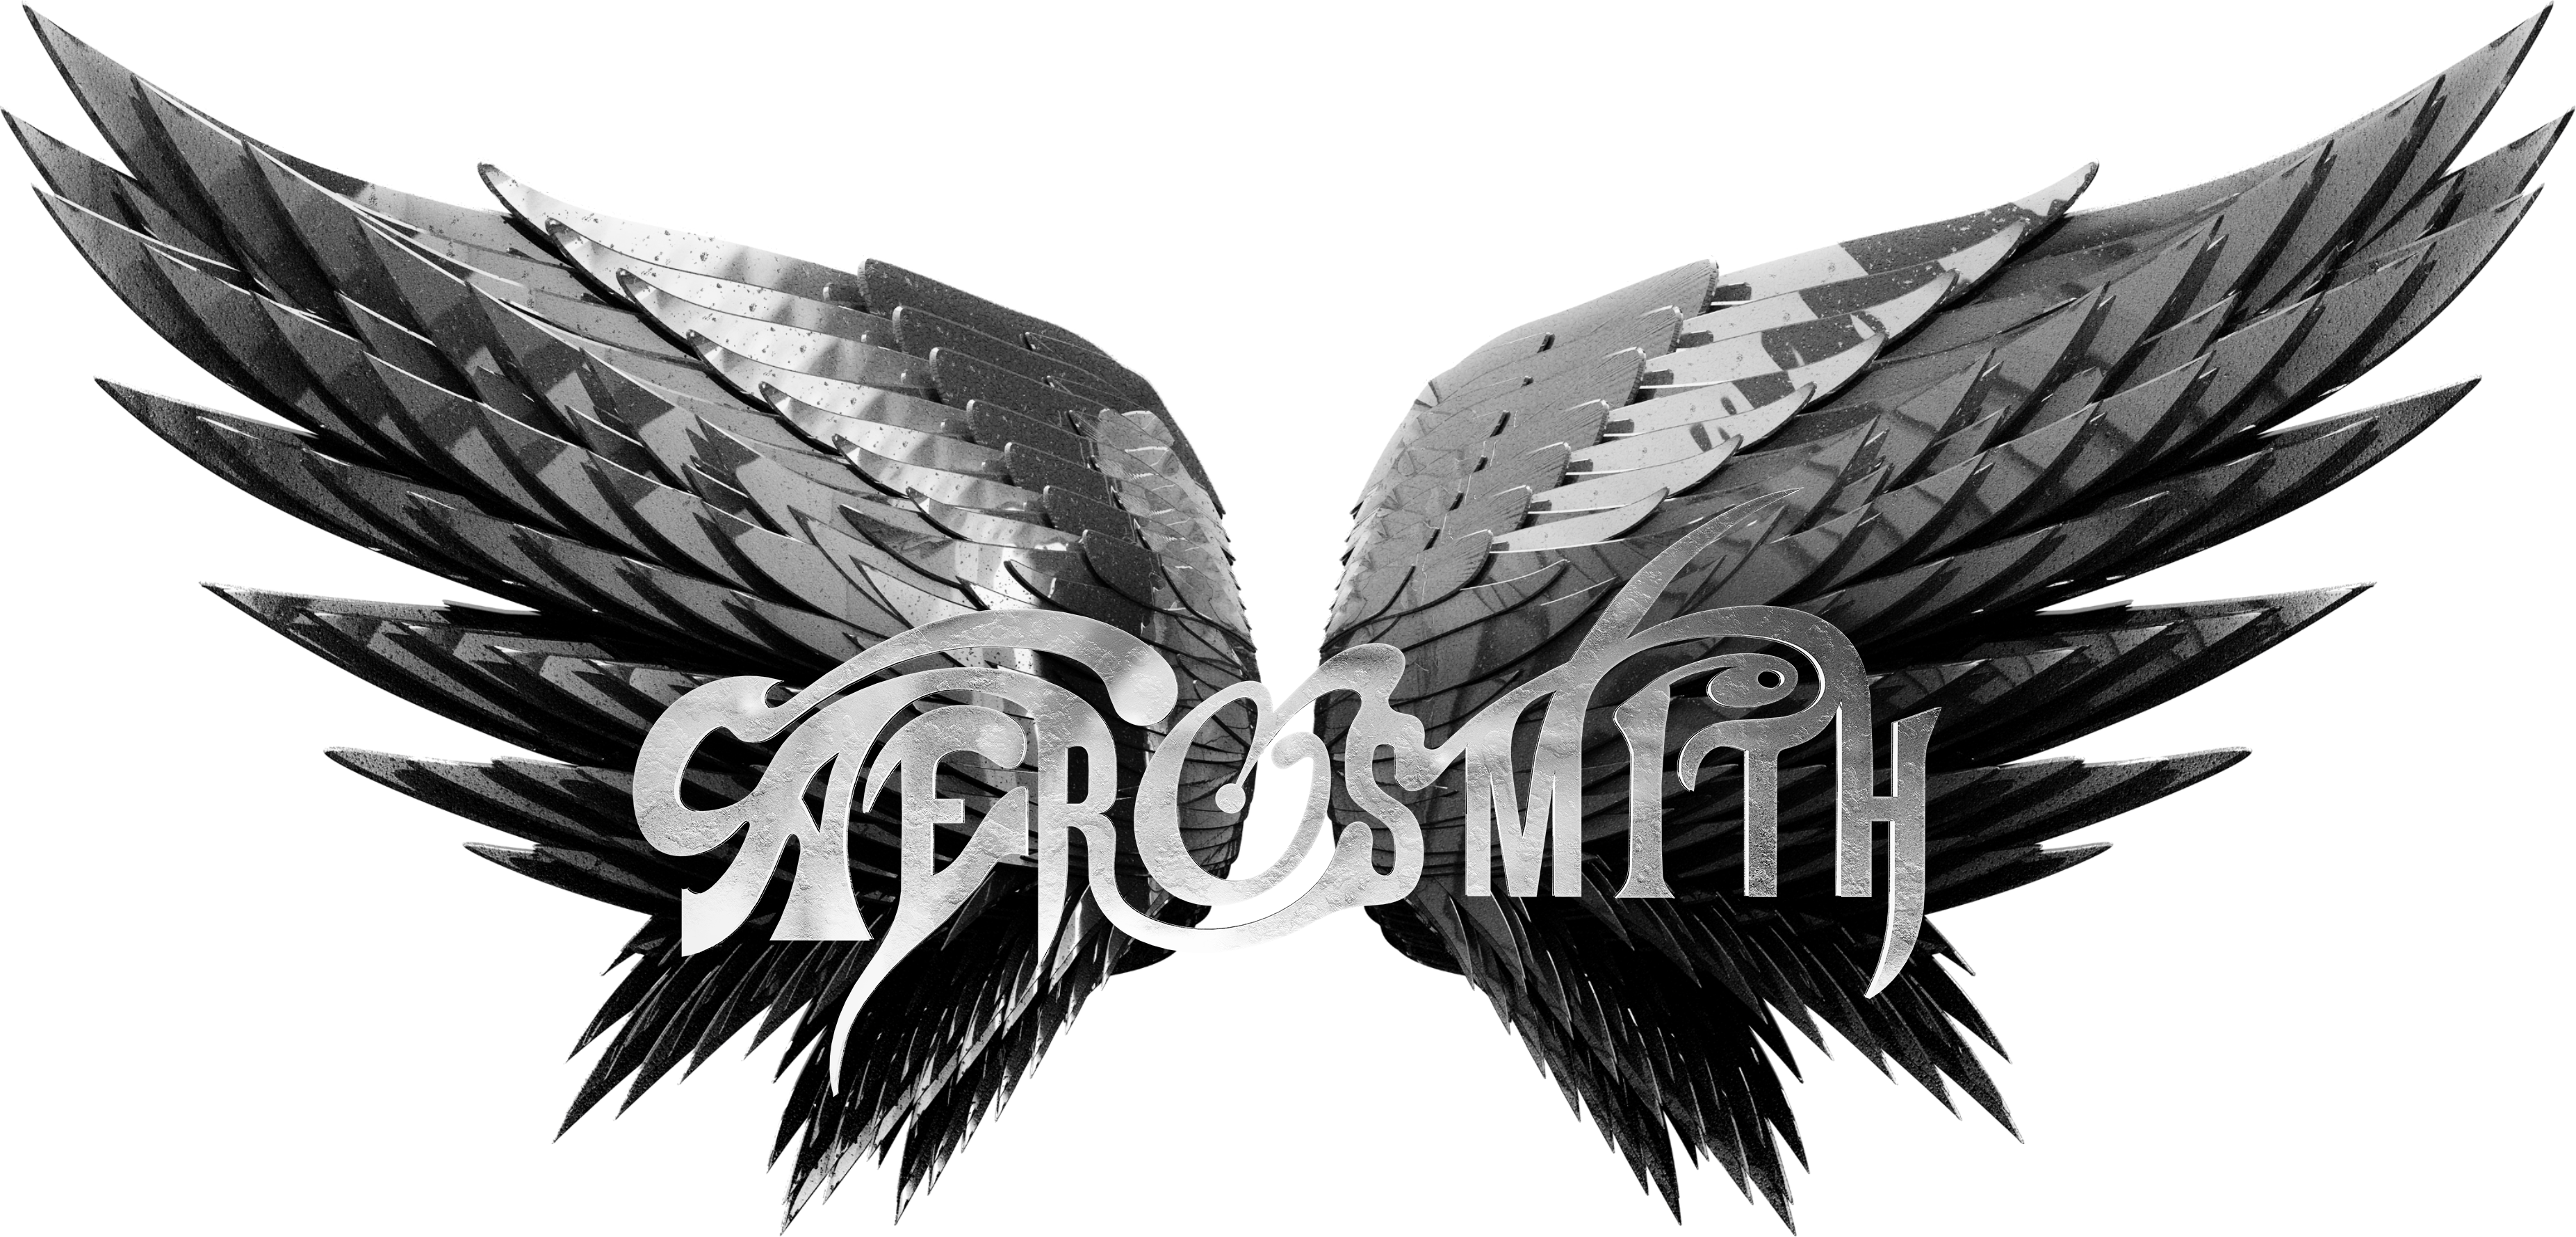 Aerosmith logo